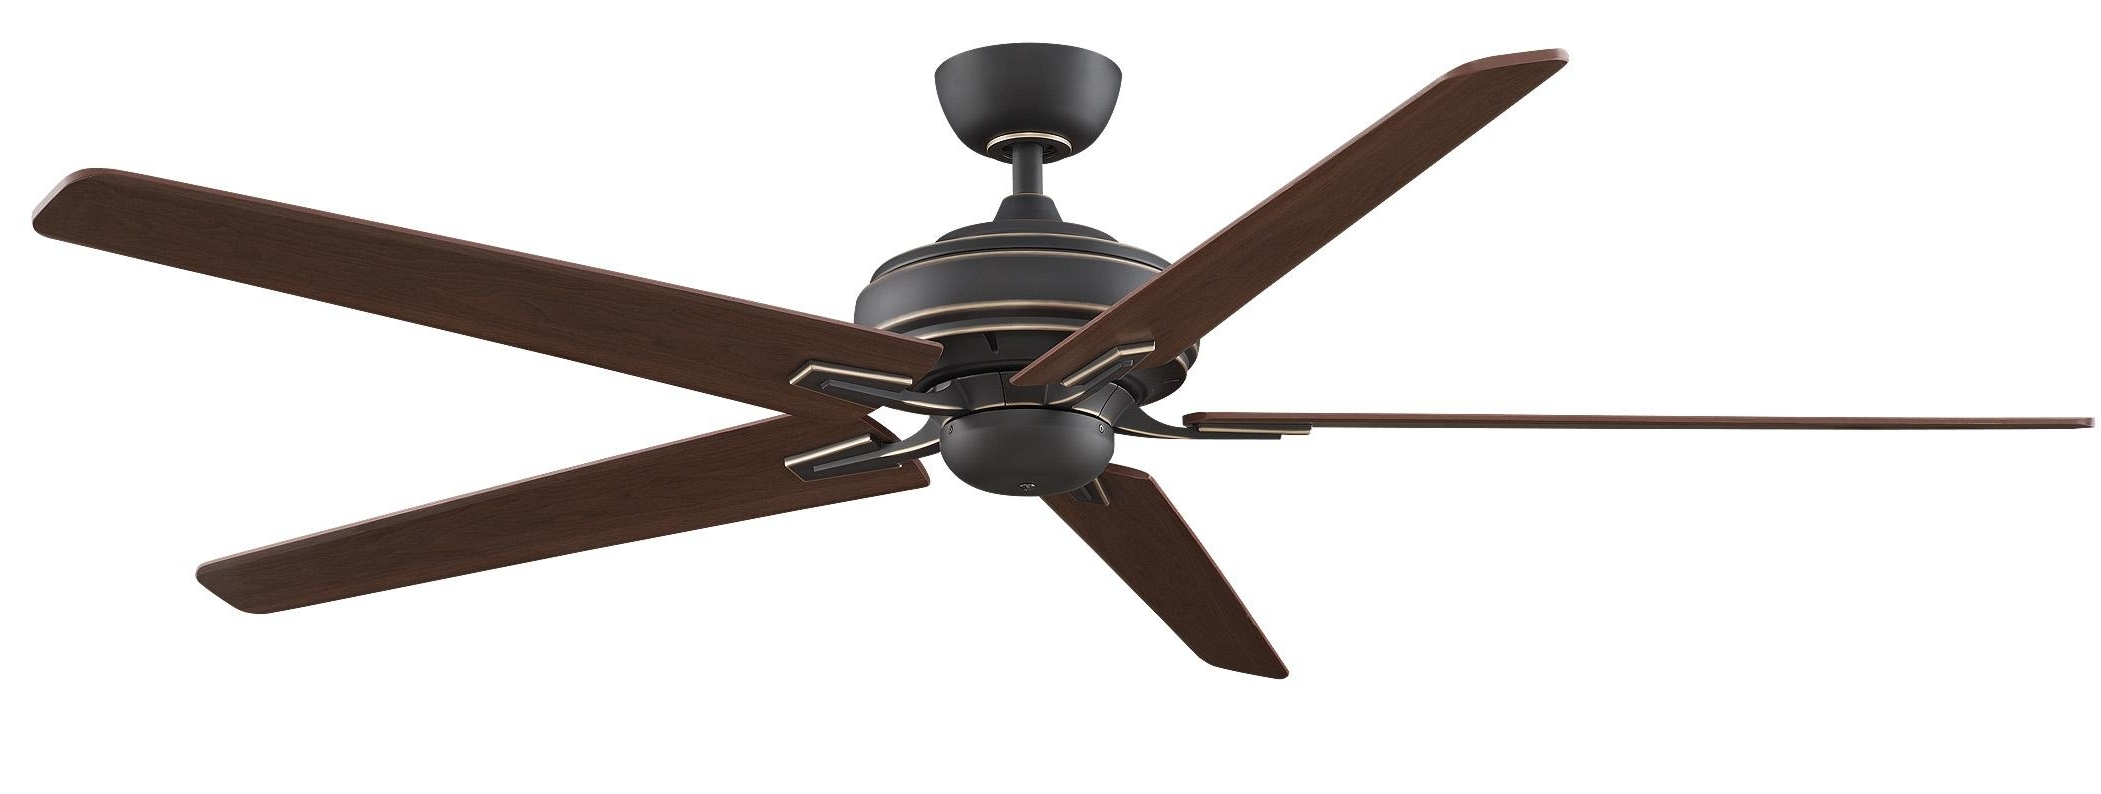 2018 Inch Outdoor Ceiling Fan With 60 Ceiling Fan With Light Intended For 72 Inch Outdoor Ceiling Fans With Light (Gallery 12 of 20)